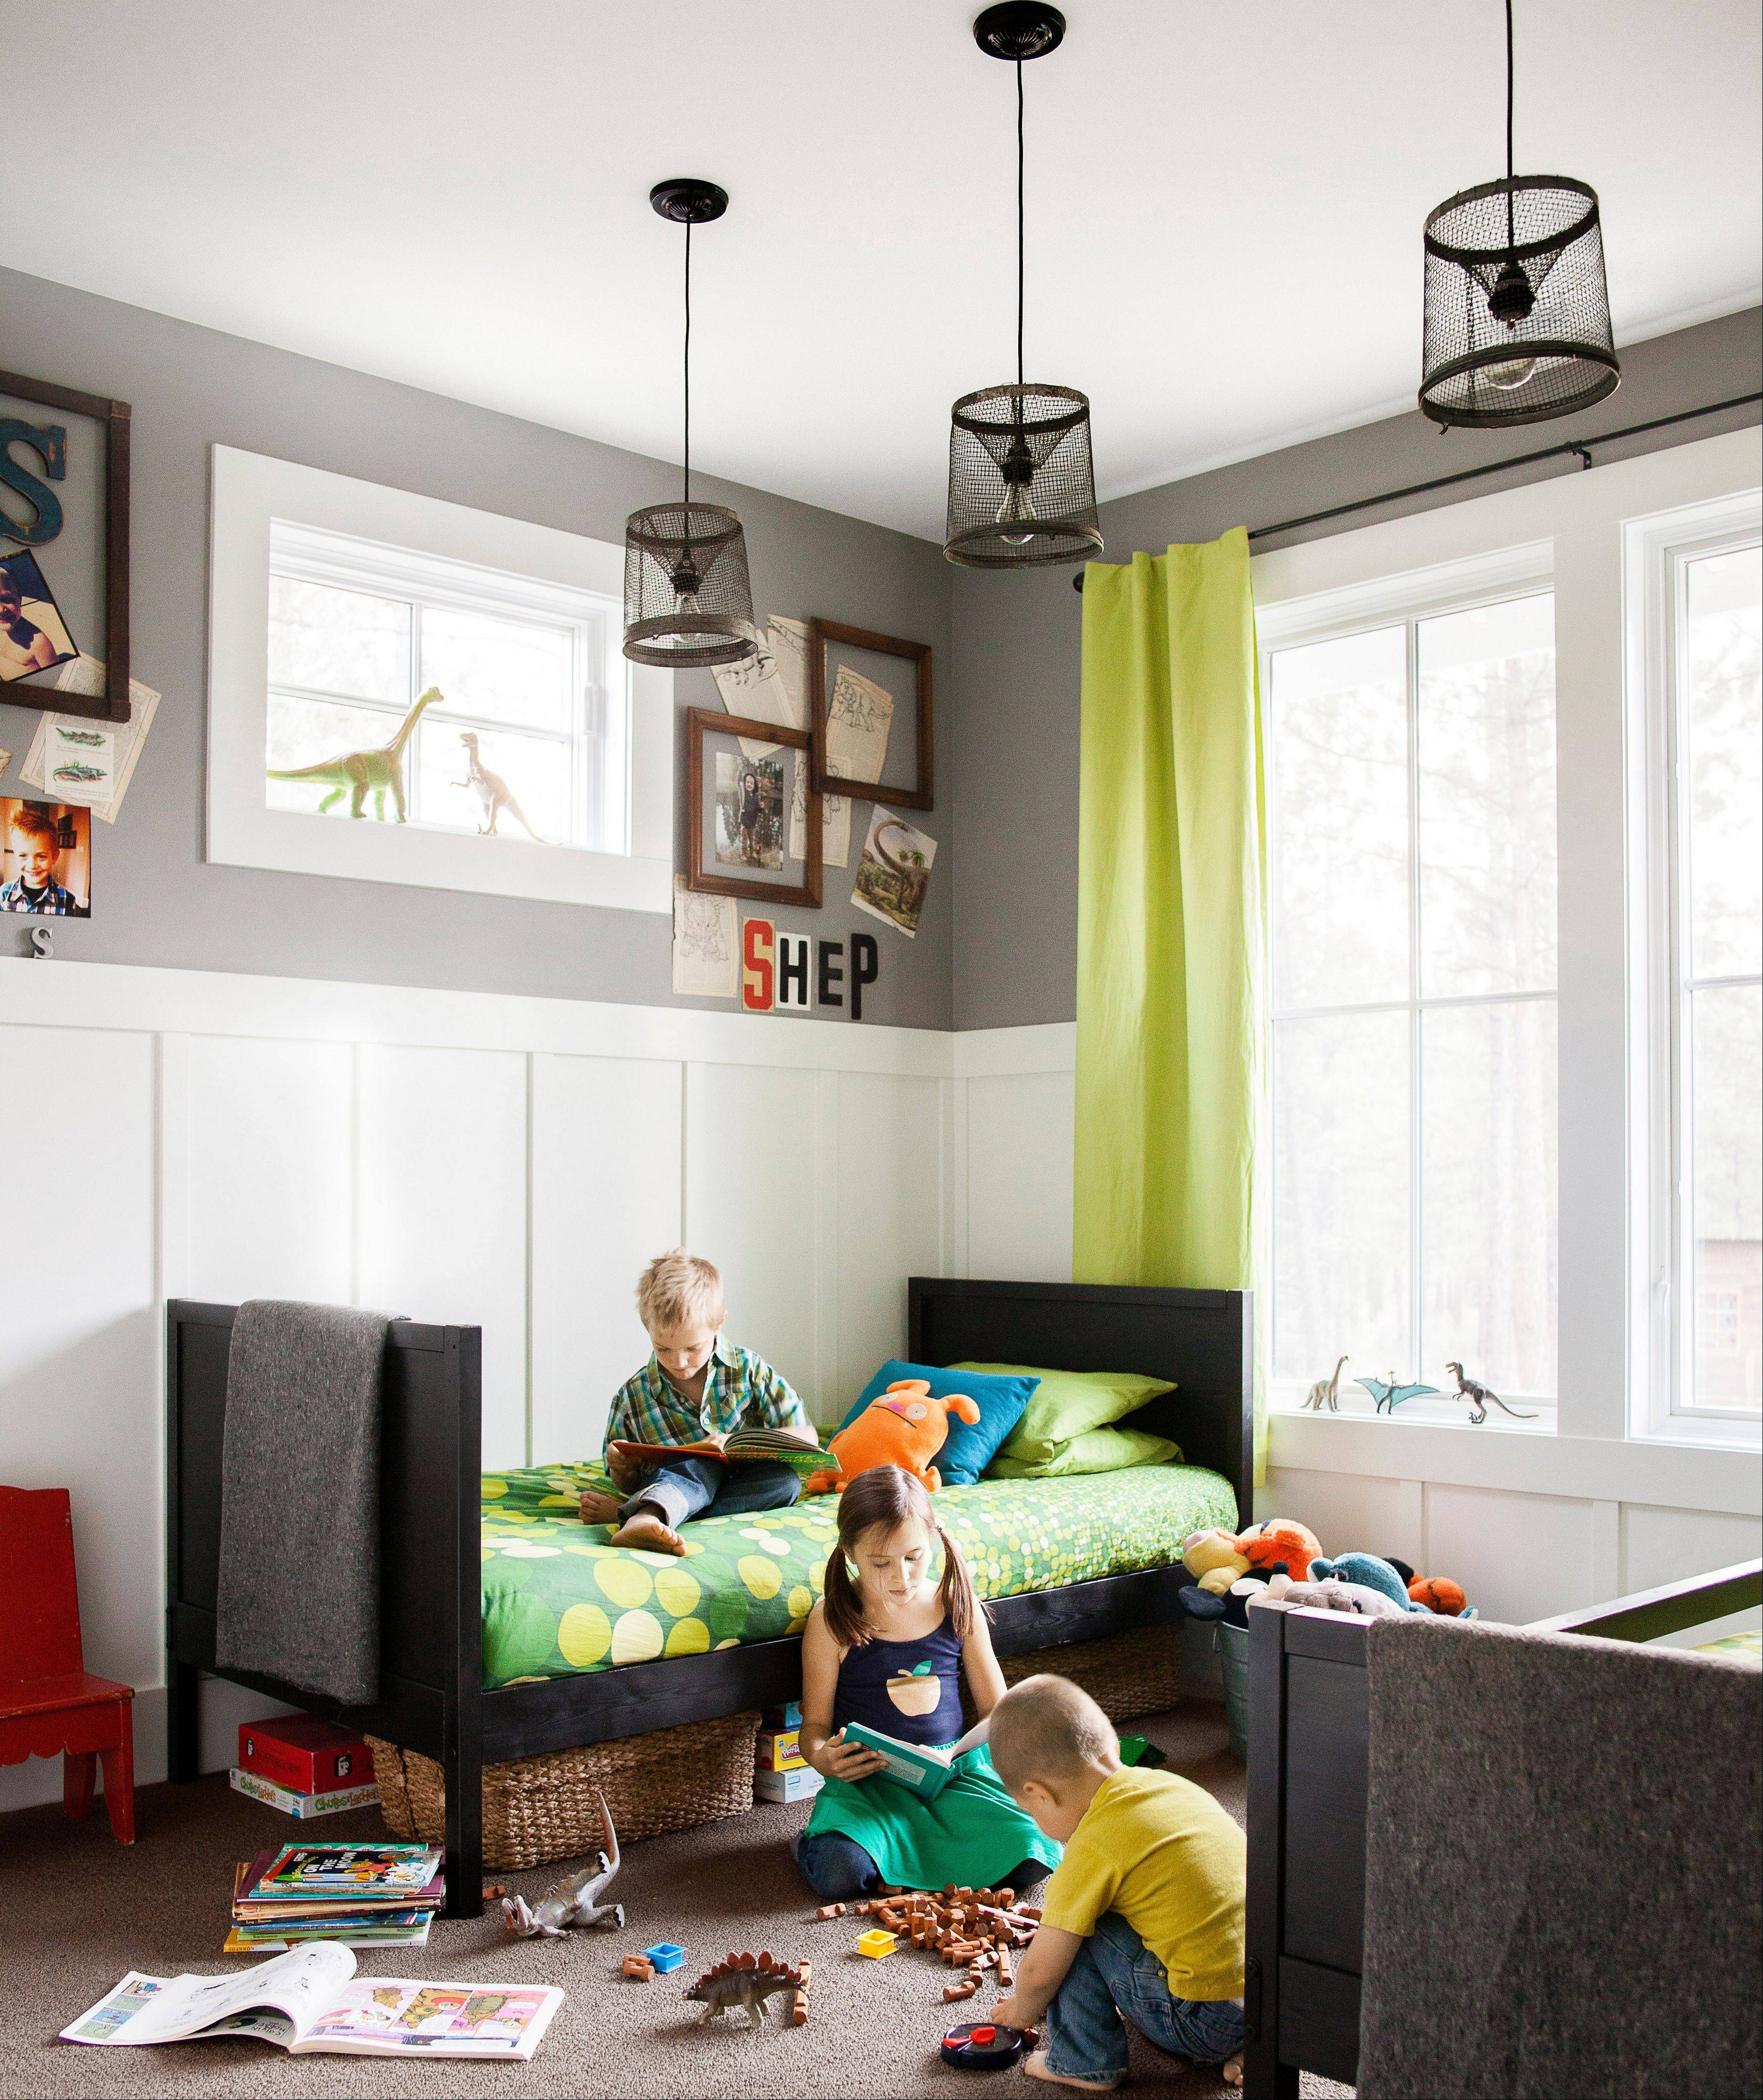 A boys' room featured in Country Living magazine that is shared by a 5-year-old and a 2-year-old features bright-green window panels that amp up the energy in the room without feeling too childish.